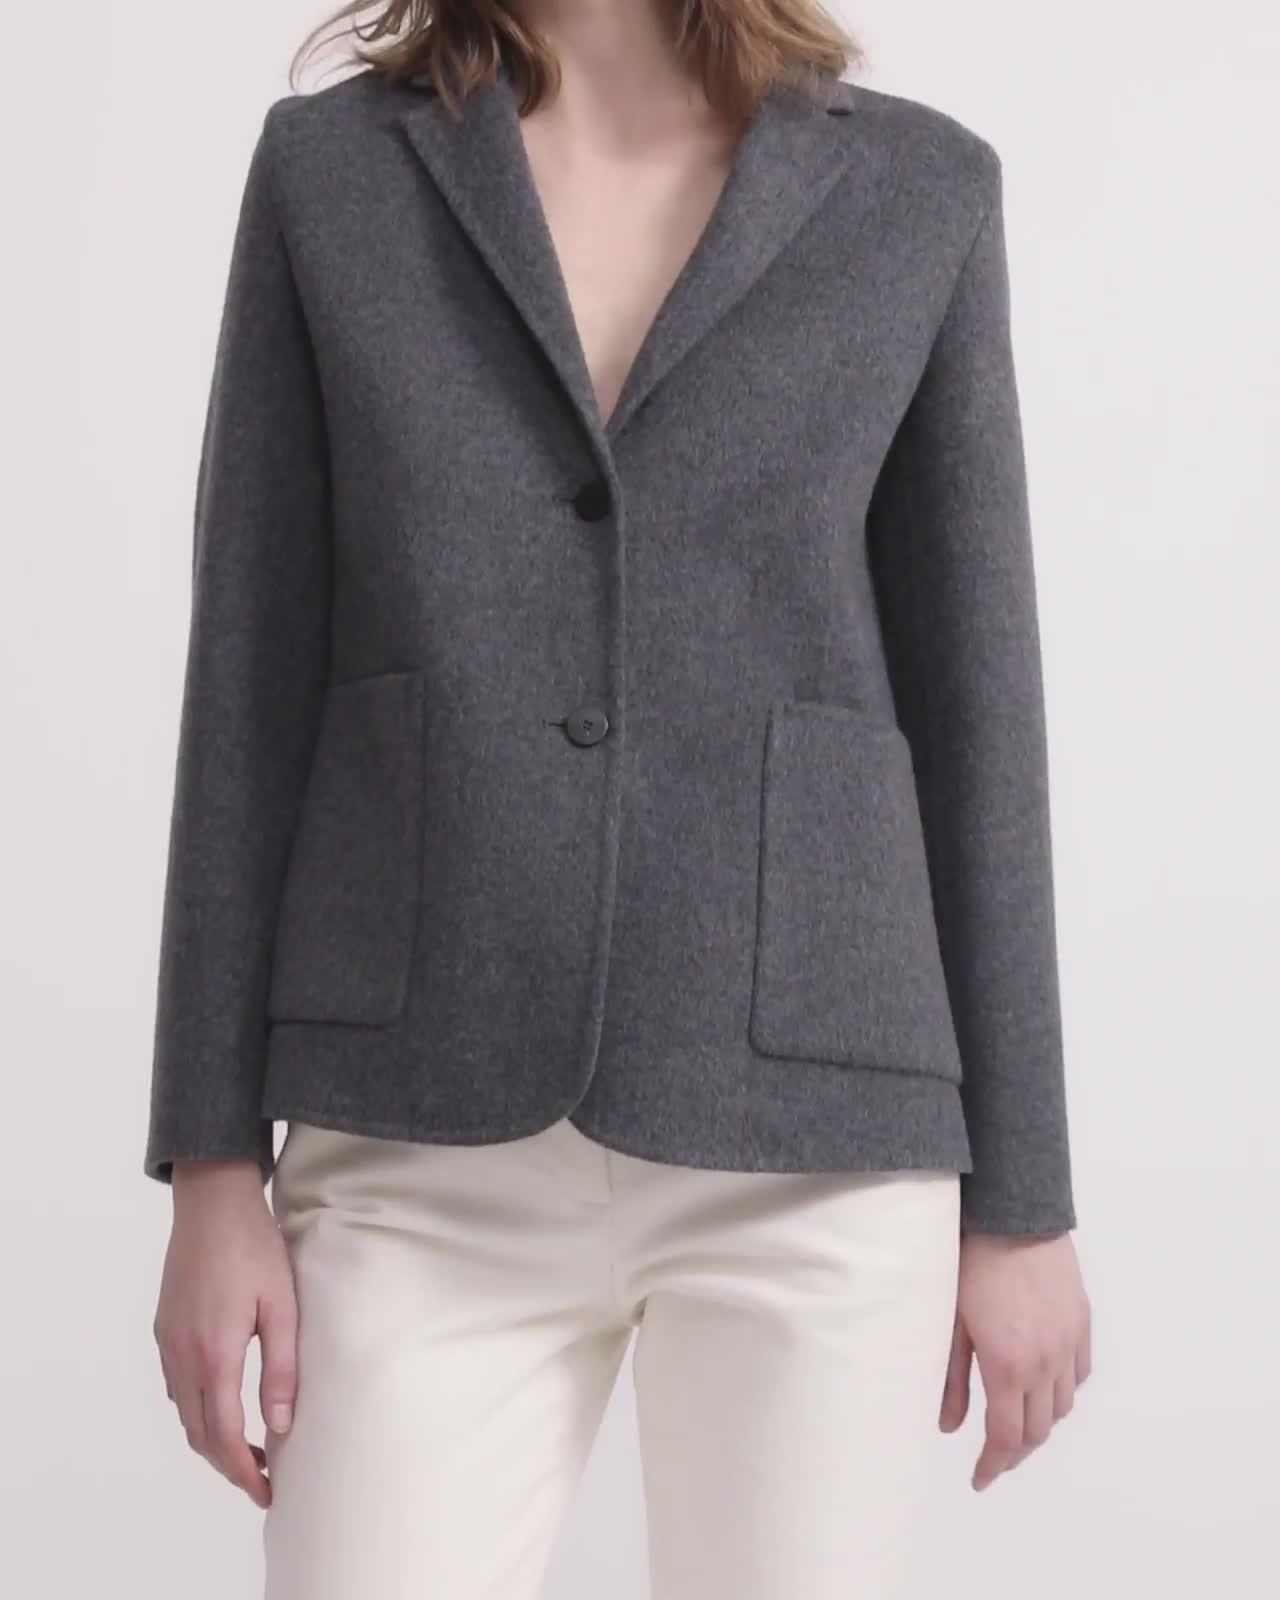 Double-Faced Shrunken Blazer